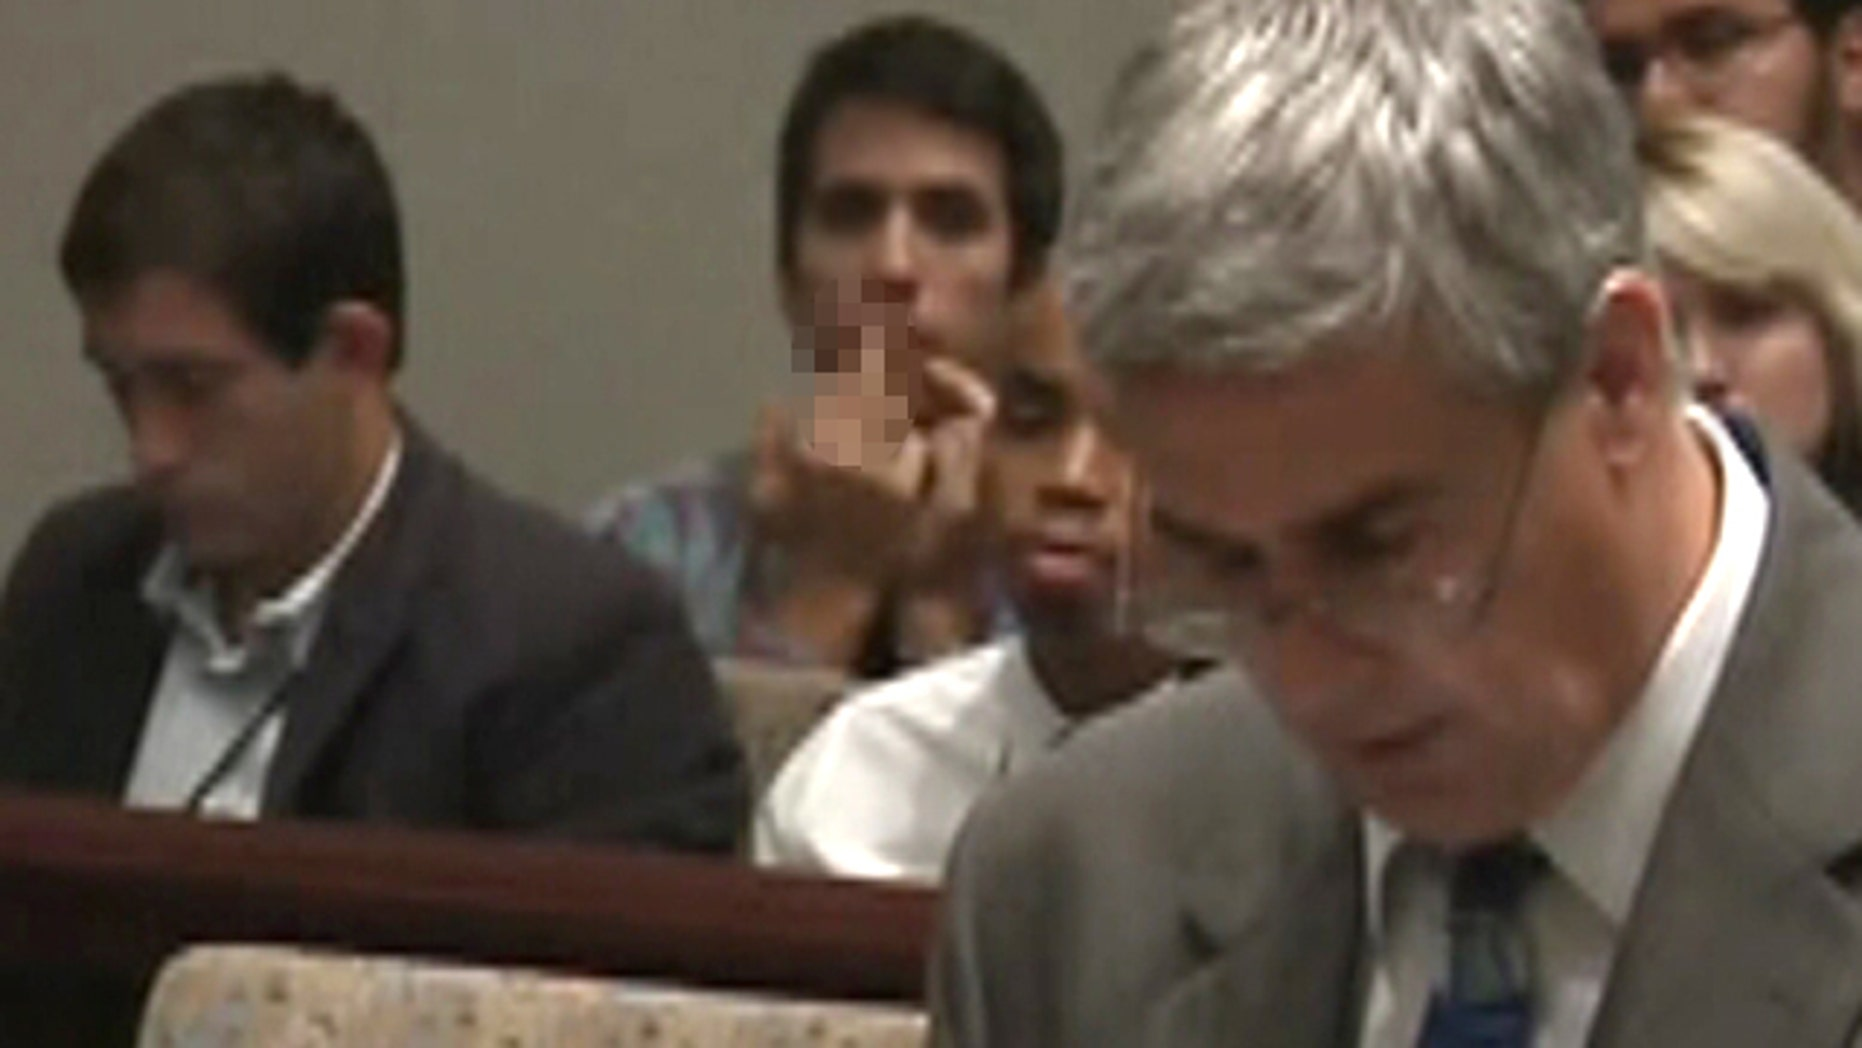 Video catches Matthew Bartlett giving the middle finger to a prosecutor during the Casey Anthony trial.